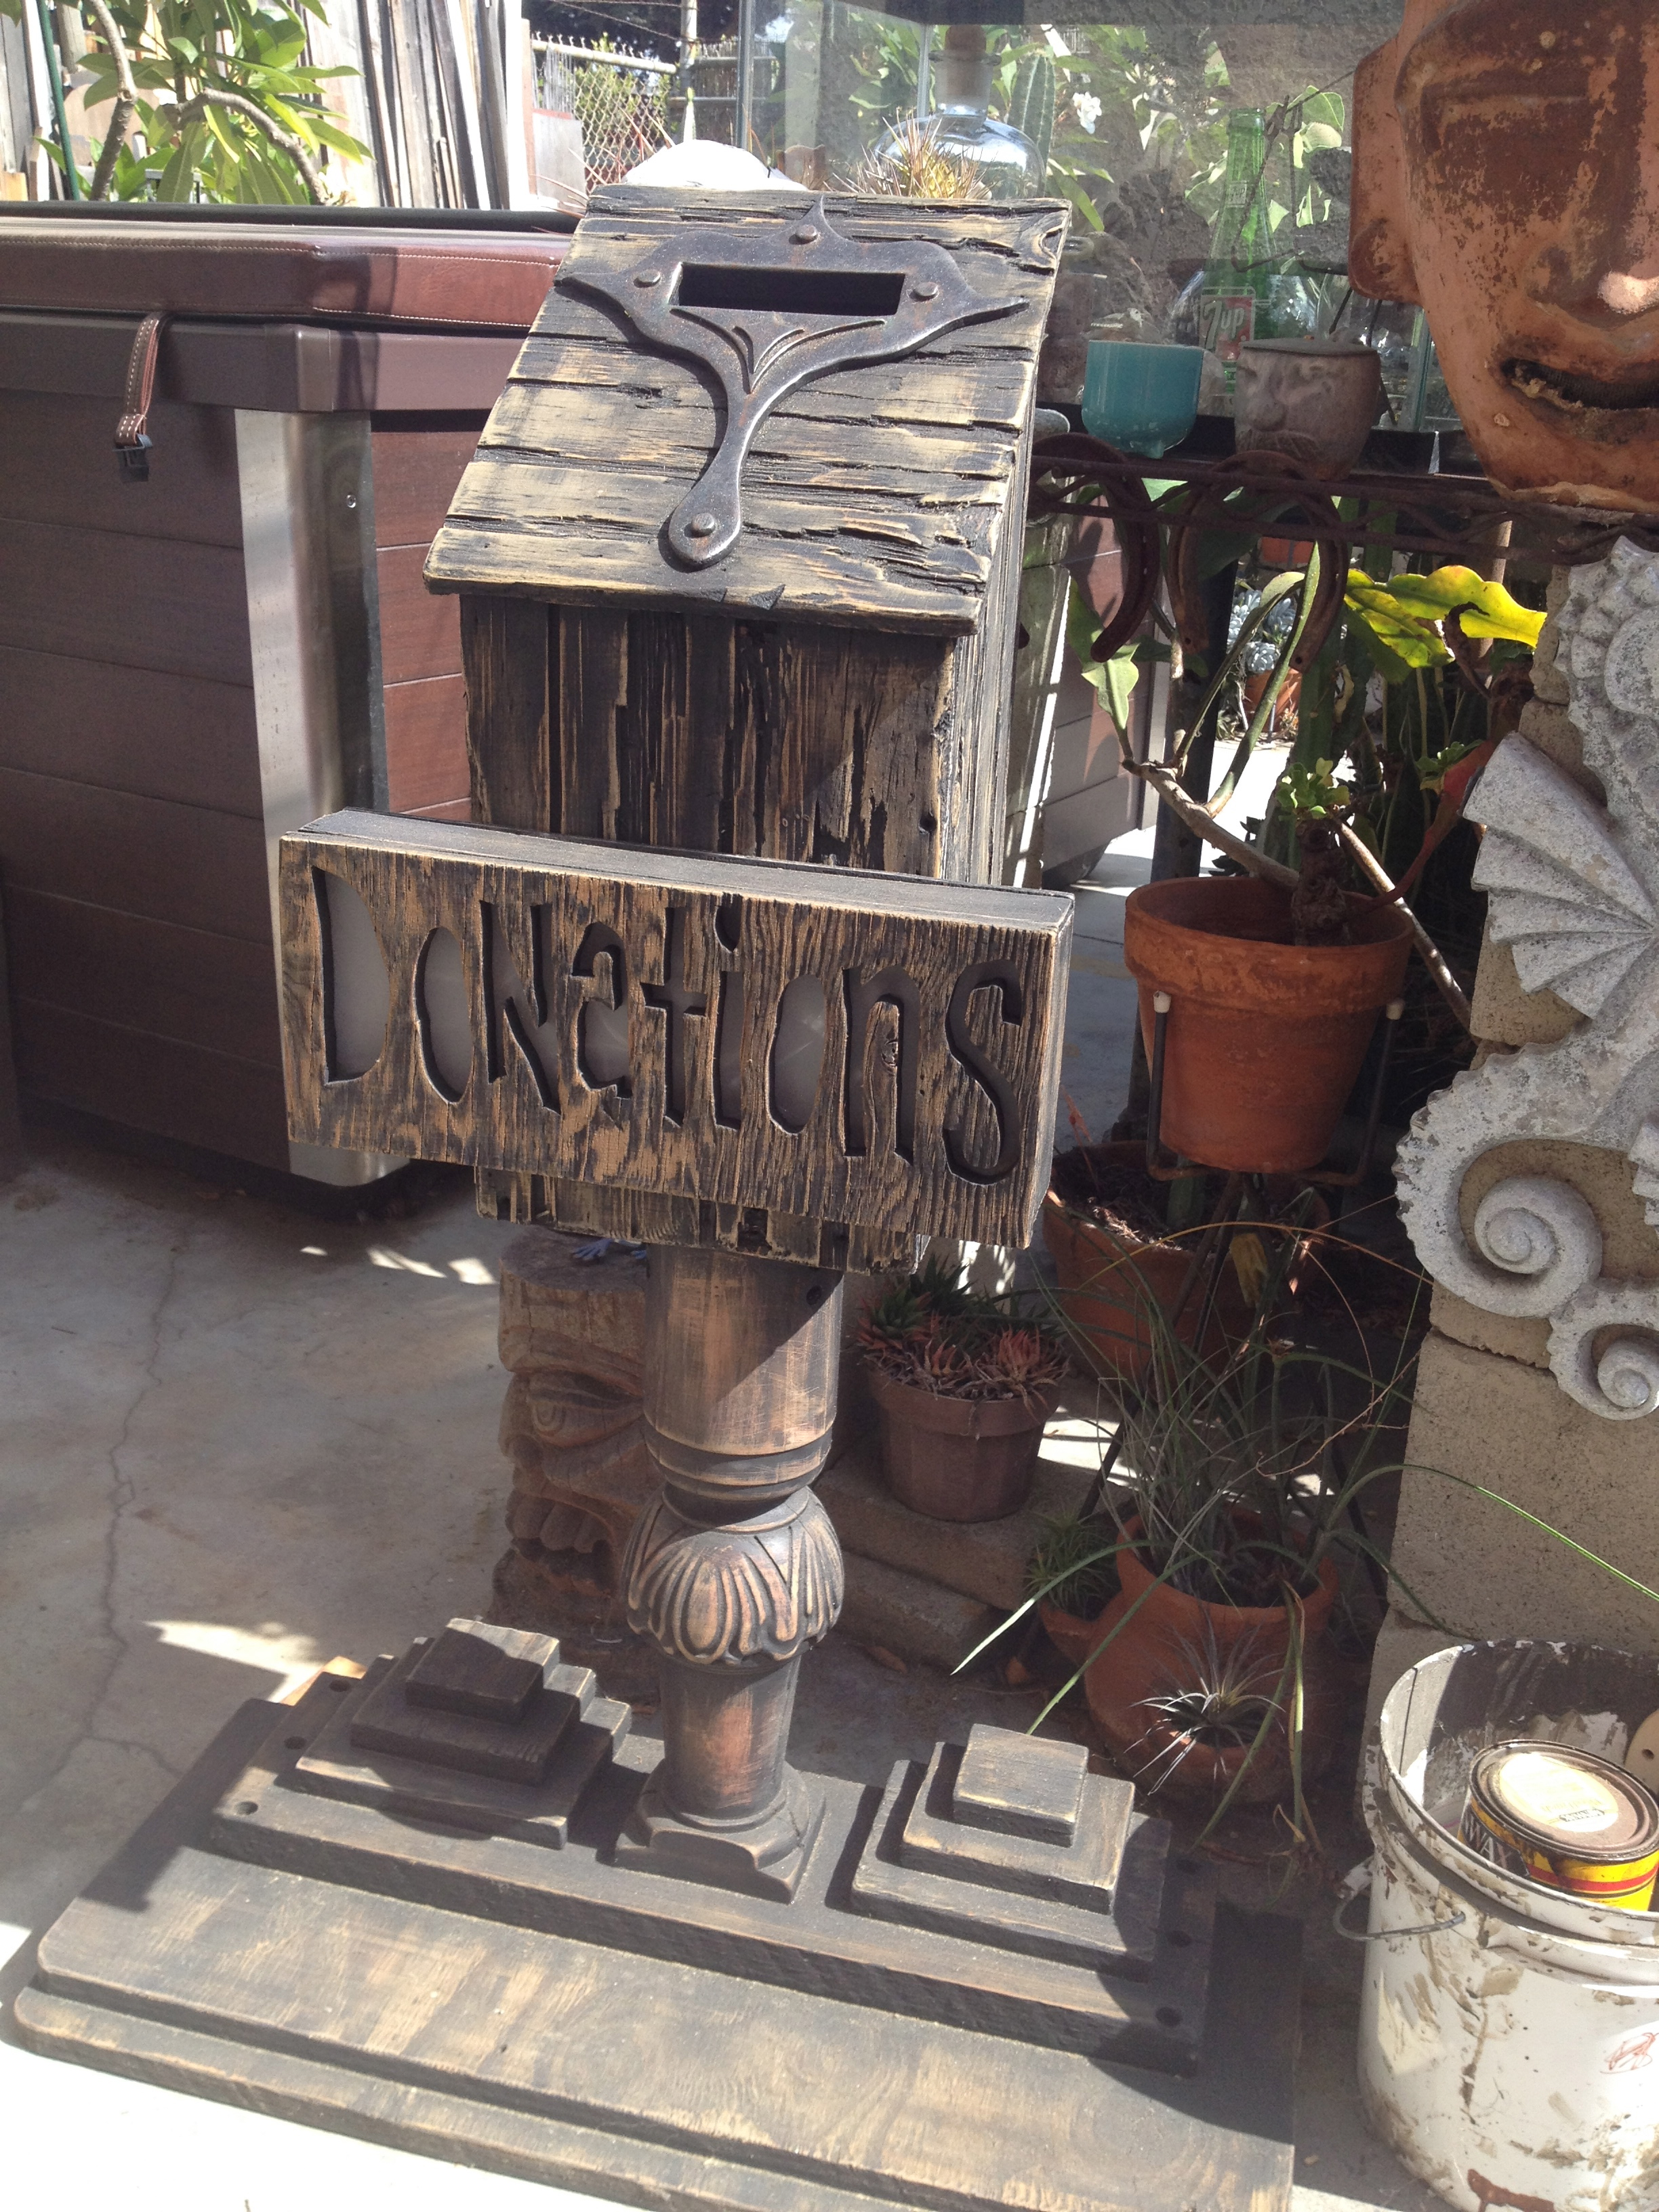 The Venice Haunted House and Eternal Rest Cemetery is free, but since people have asked to make donations in previous years, Rose created a tombstone-style donation box.